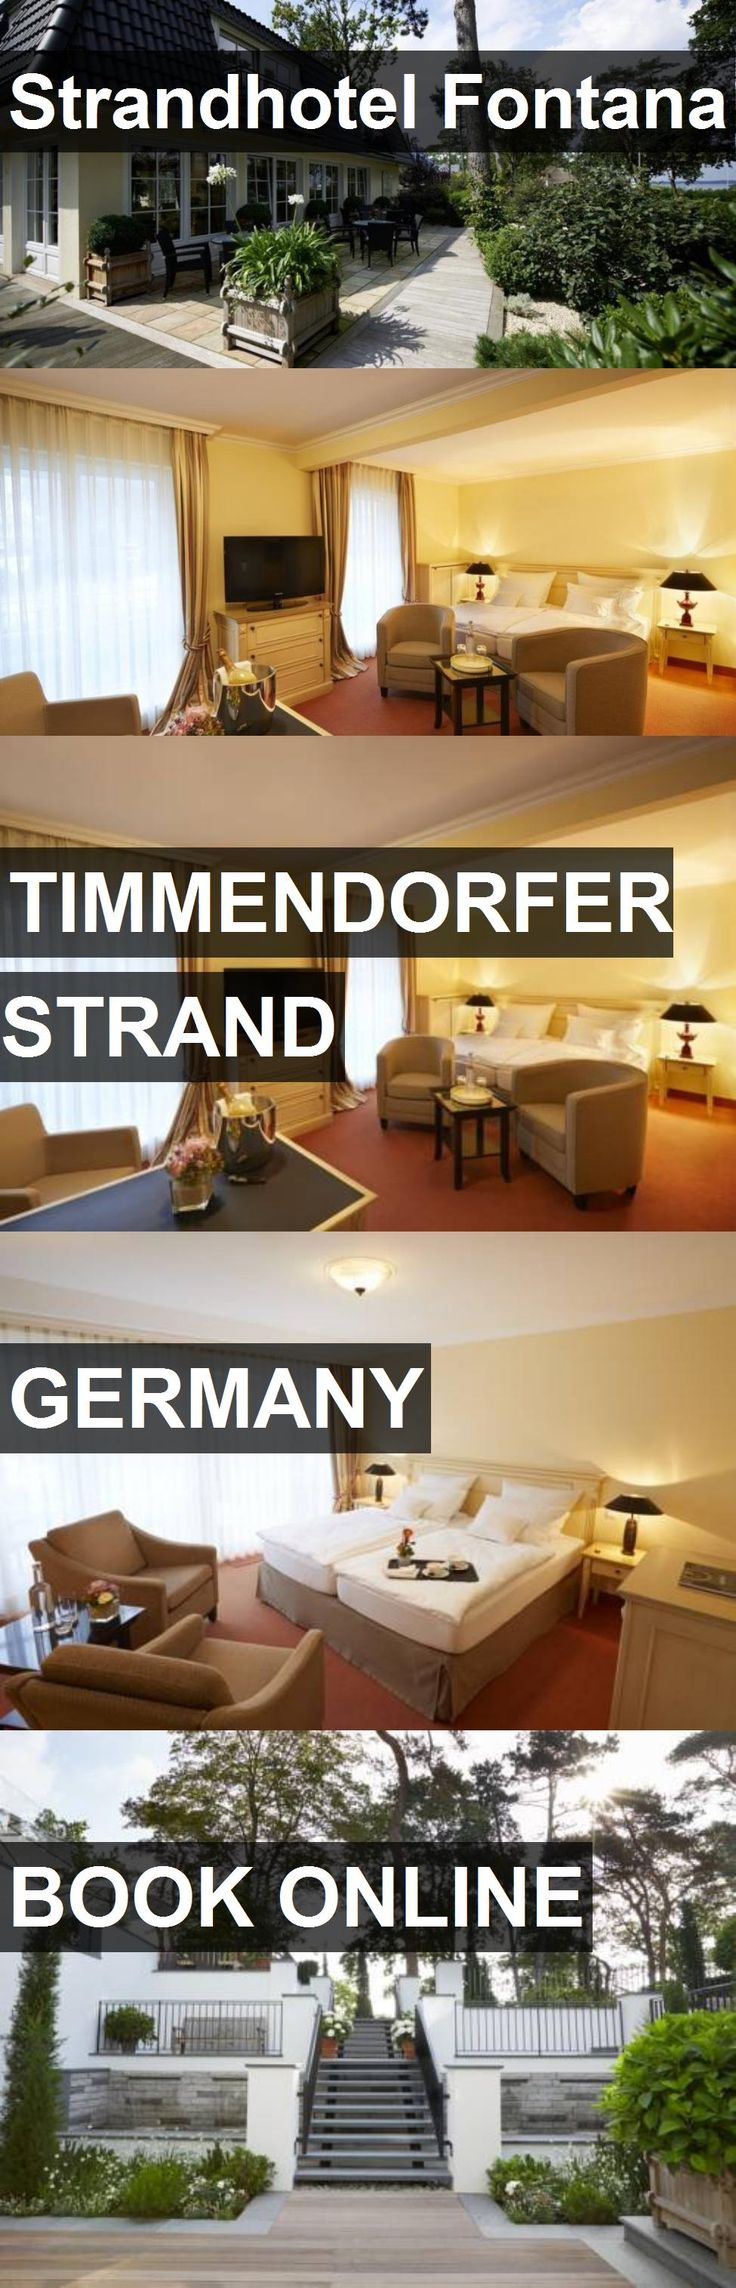 Strandhotel Fontana in Timmendorfer Strand, Germany. For more information, photos, reviews and best prices please follow the link. #Germany #TimmendorferStrand #travel #vacation #hotel